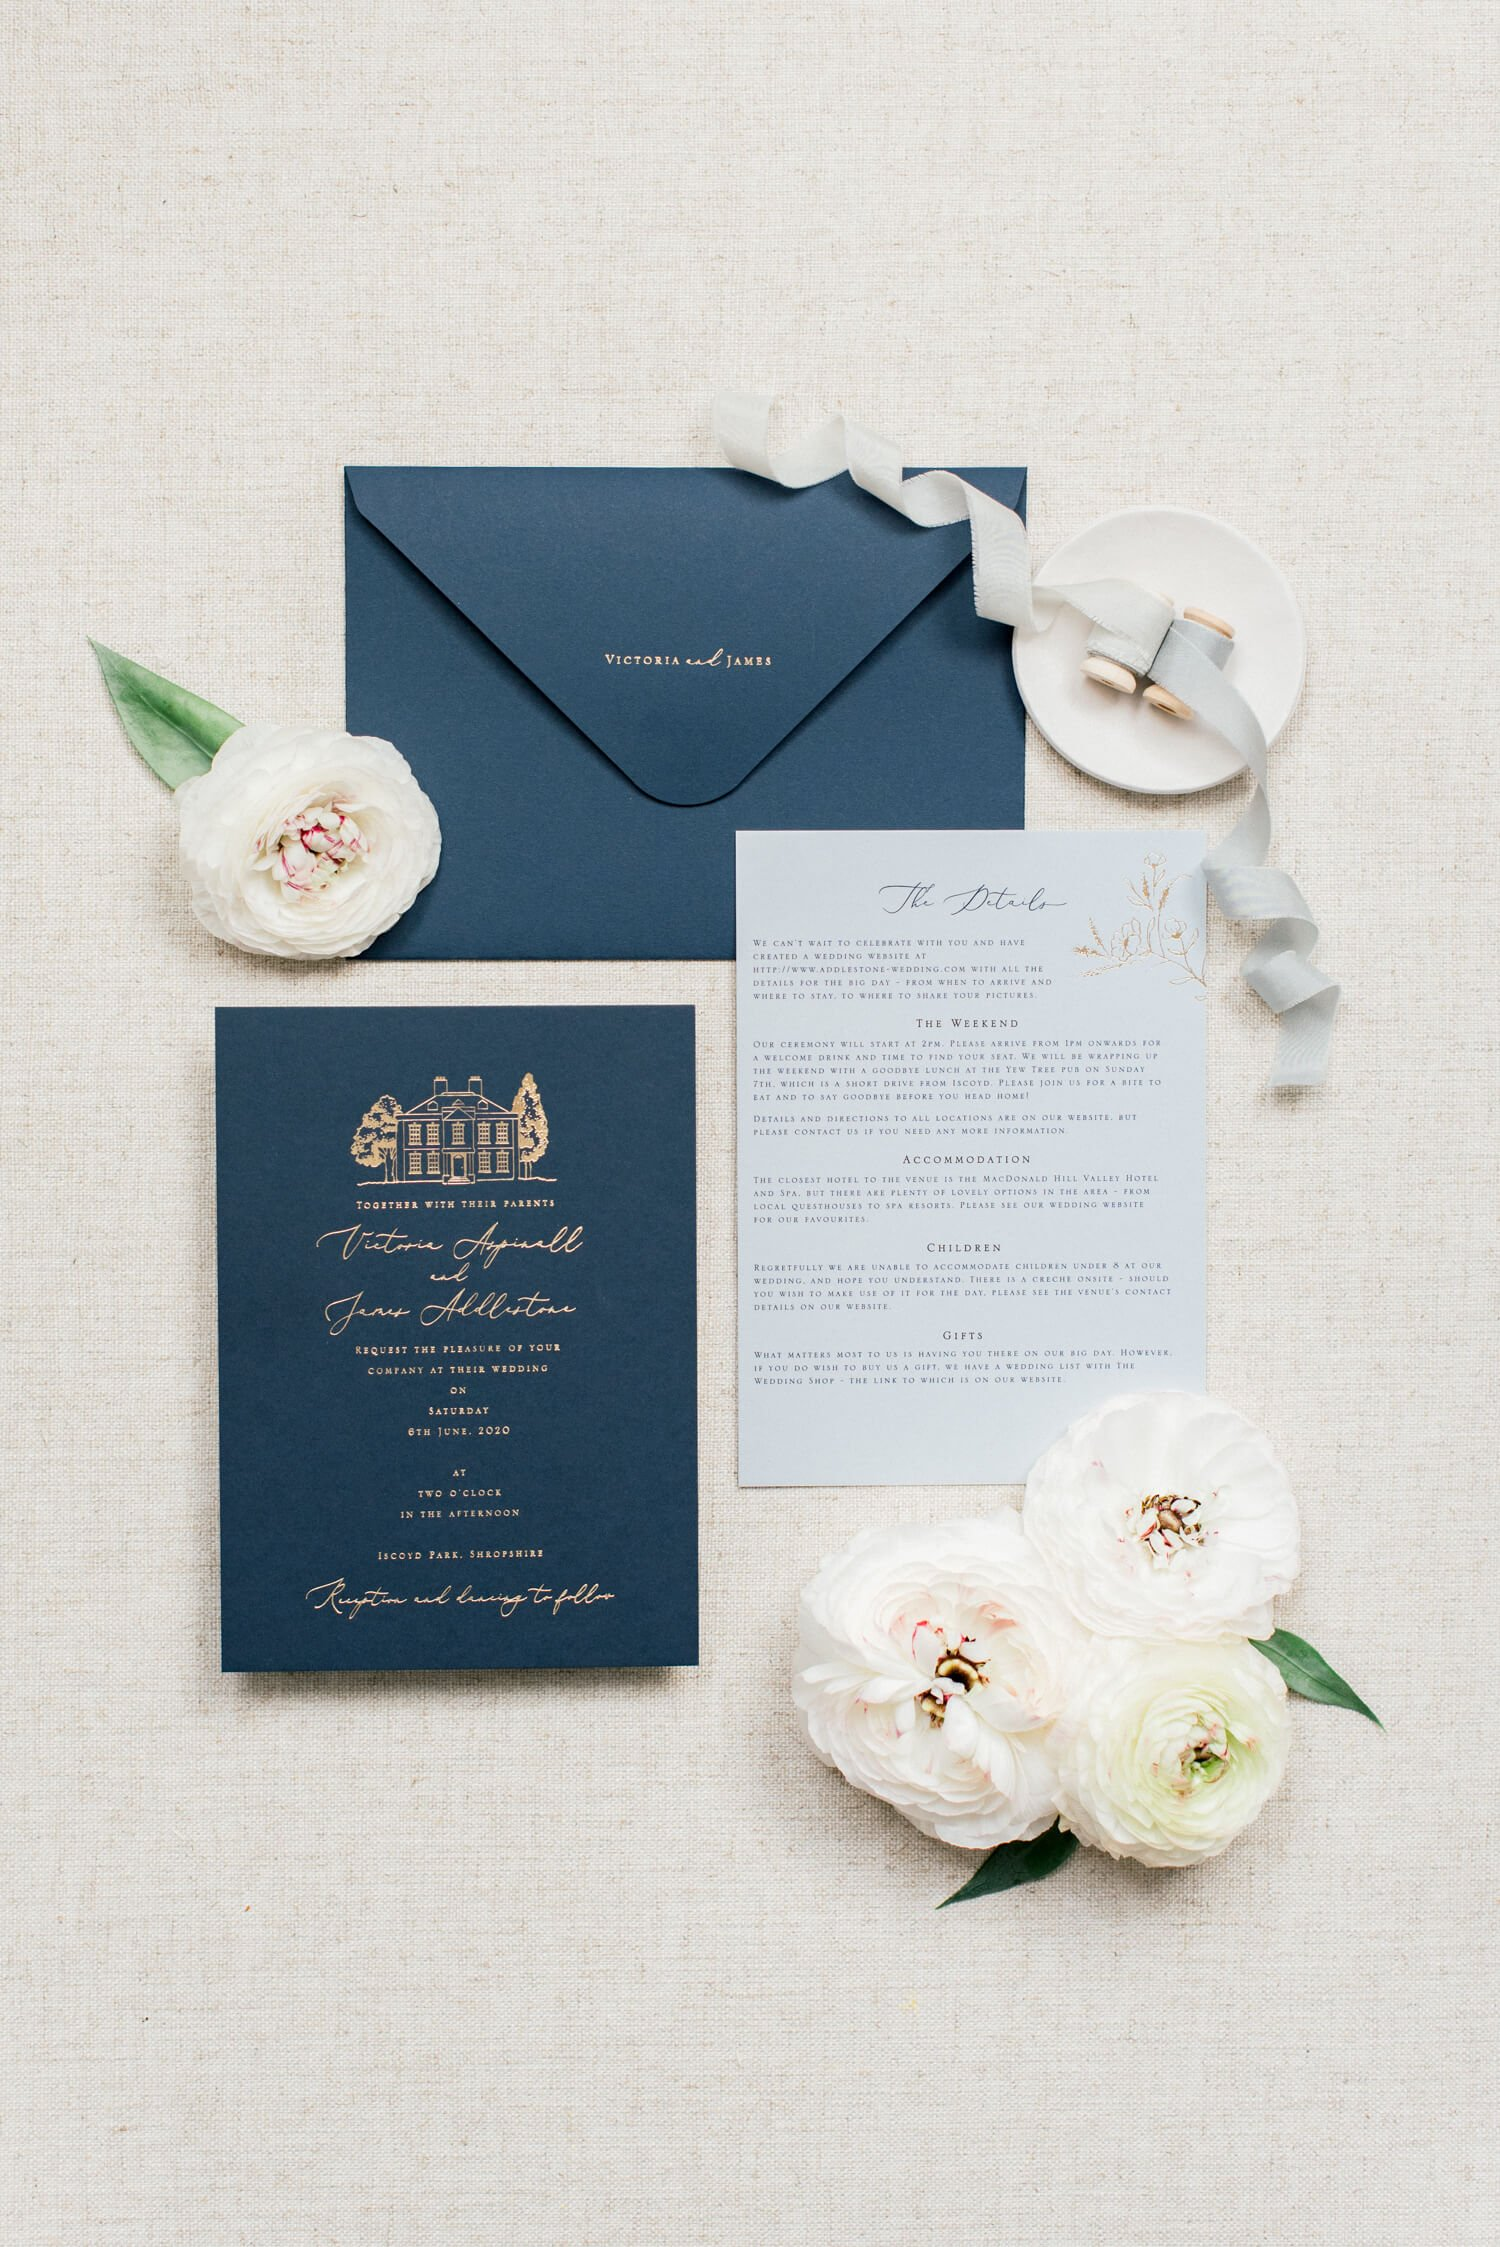 simple and elegant wedding stationery suite flatlay: Navy blue and pale blue wedding invitation with gold foiling by Katie Sue Design Co, Silk Ribbons by Silk and Purl. Styling and Photo by Newcastle wedding photographer Cristina Ilao www.cristinailao.com